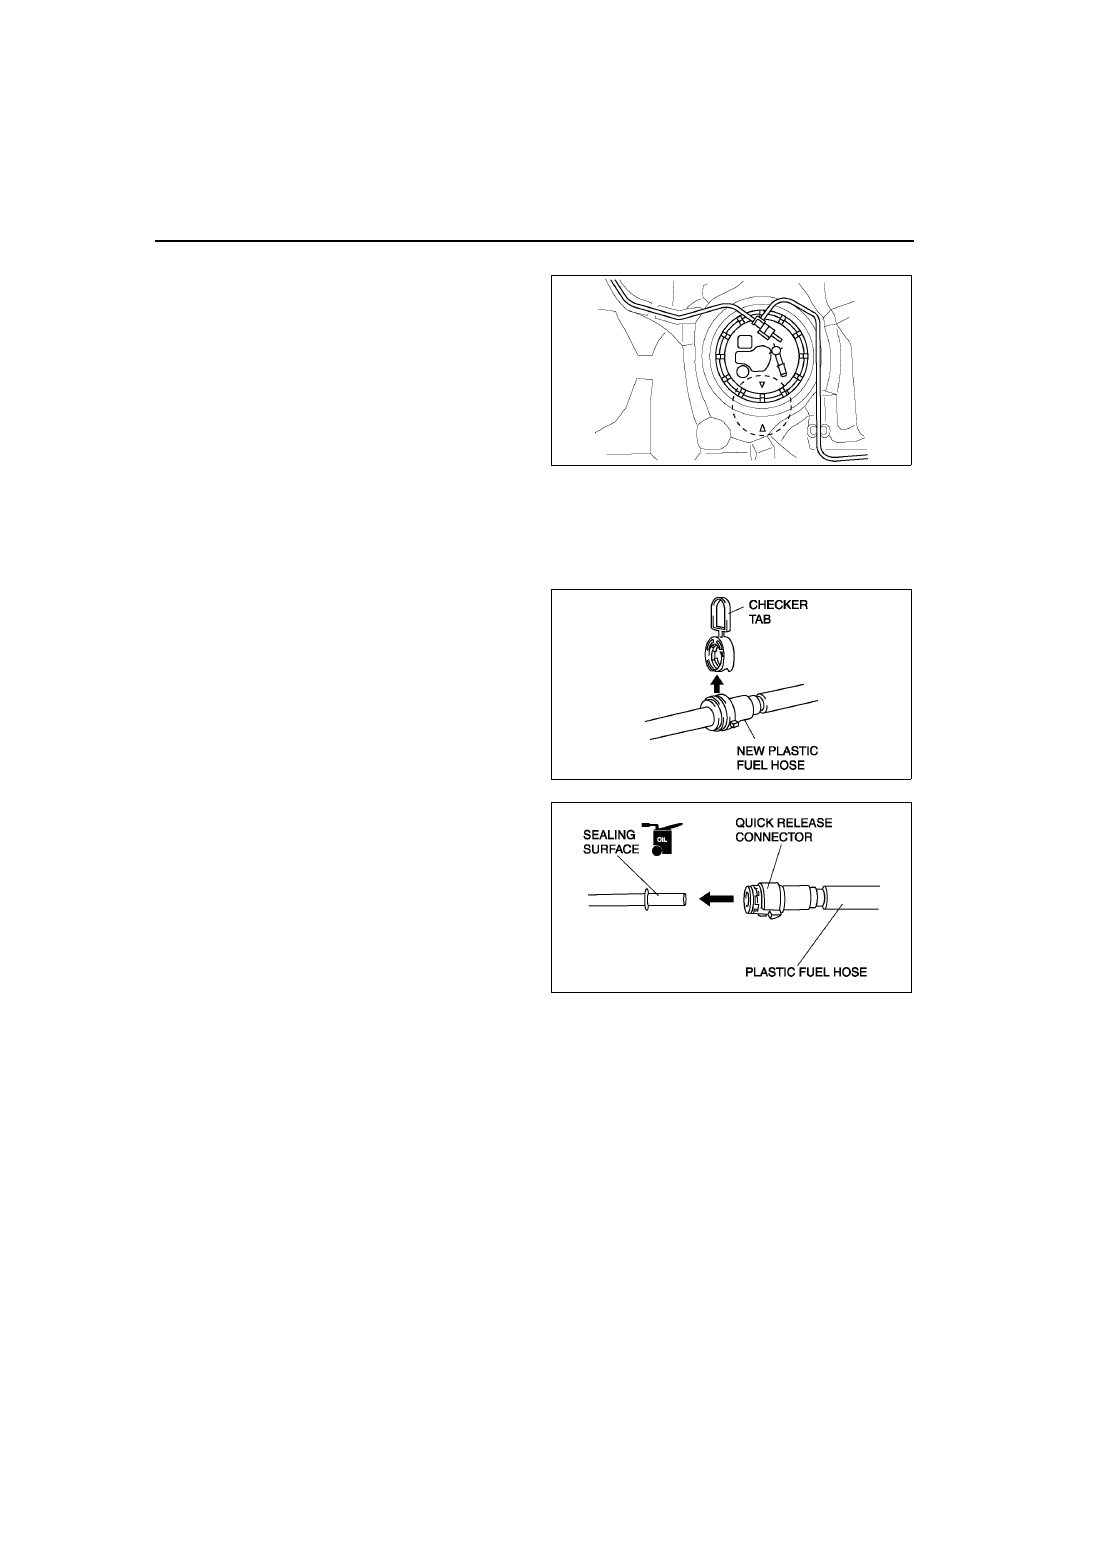 Mazda 3 Service Manual: Fuel Filler Lid Opener And Lever RemovalInstallation